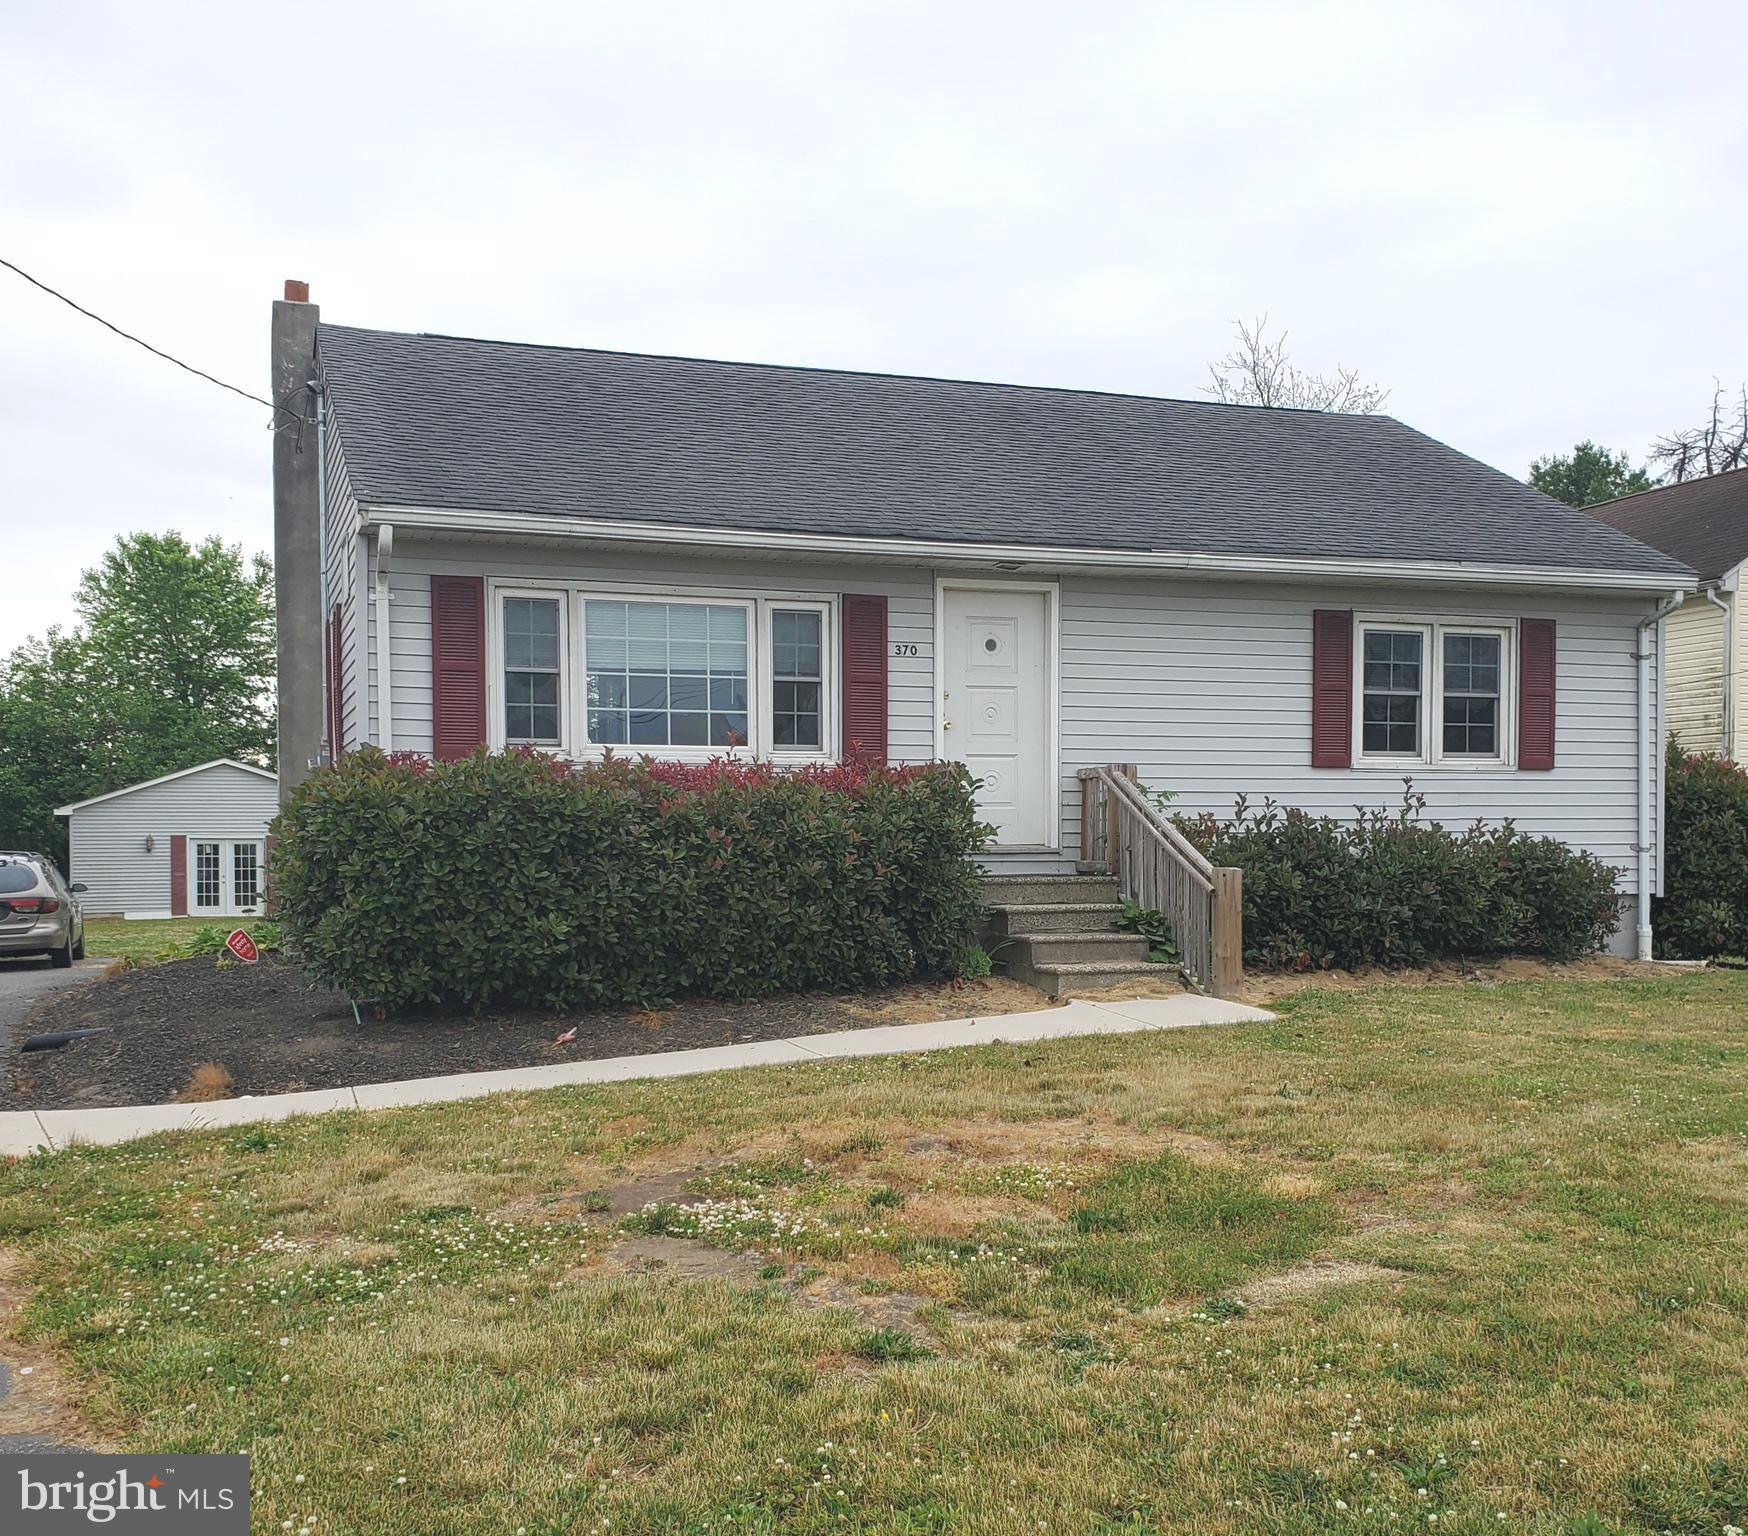 Come and see this move-in ready home located in Pennsville Township. Presently zoned outside of the flood-requirement area, this could be your first home or a great downsize. Upgraded within last few years with high-efficiency gas heater, central air, gas hot water heater, vinyl flooring, bedroom carpeting. This lovely home also offers upgraded attic insulation, oak cabinetry in kitchen, upgraded bathroom, black top driveway. Detached building may be able to be re-converted back to oversized garage door in order to use as workshop or park cars, instead of its current use for recreation space.  Make your appointment today!